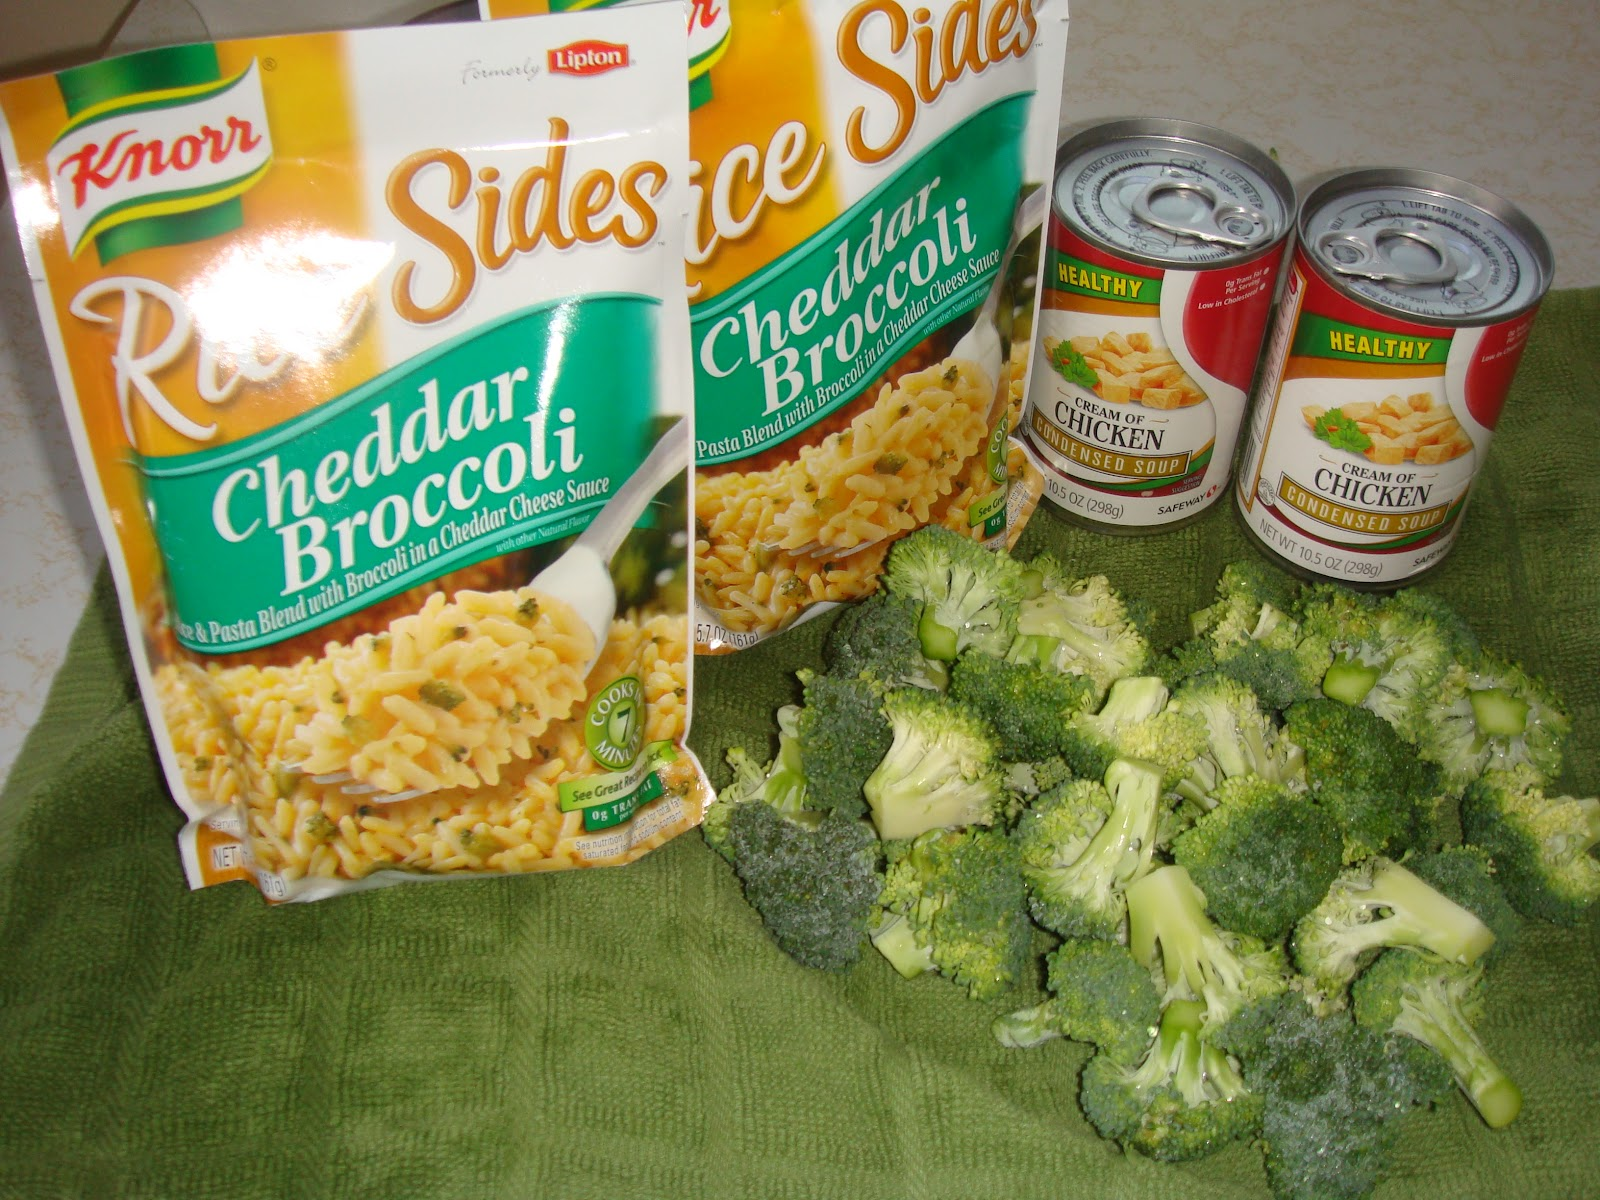 Four Sisters Cooking Chicken Broccoli Rice Bake